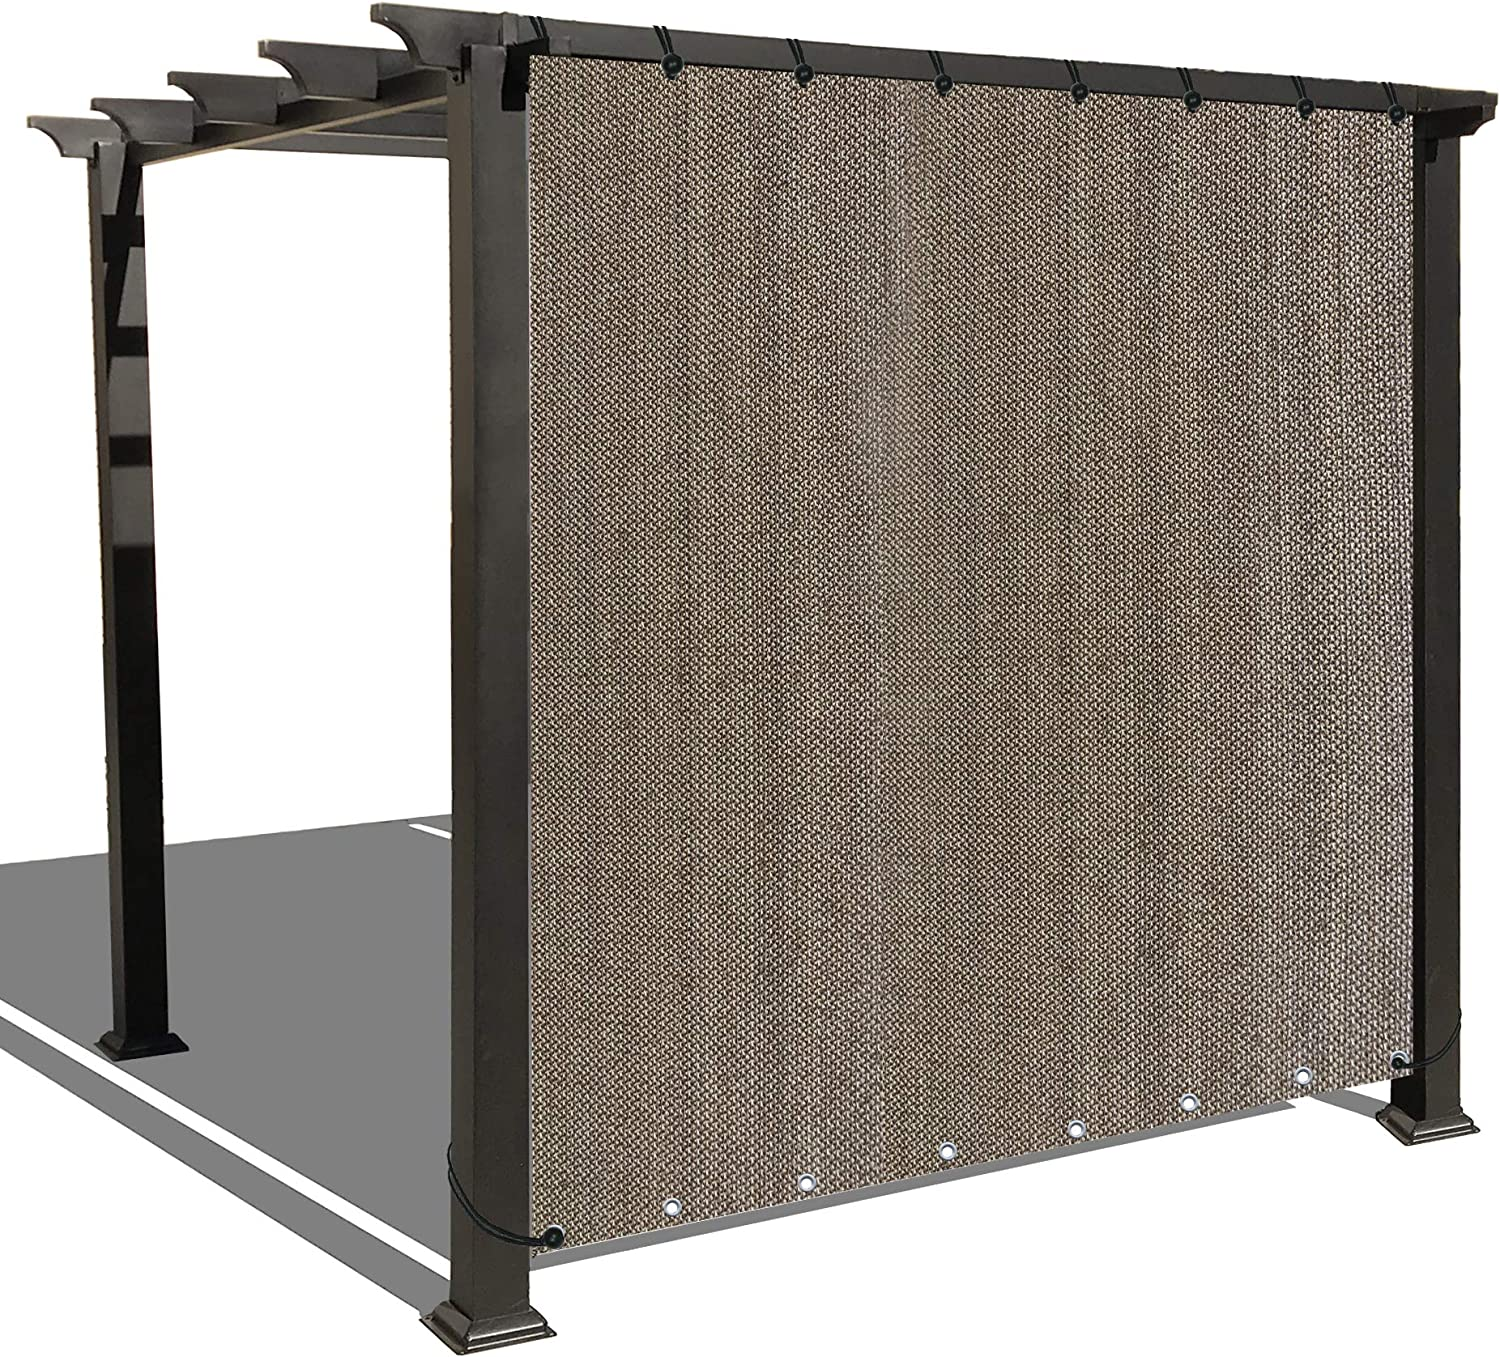 Alion Home Custom Sized Outdoor Sun Shade Privacy Panel with Grommets on 2 Sides for Patio, Awning, Window (10' x 6', Walnut)